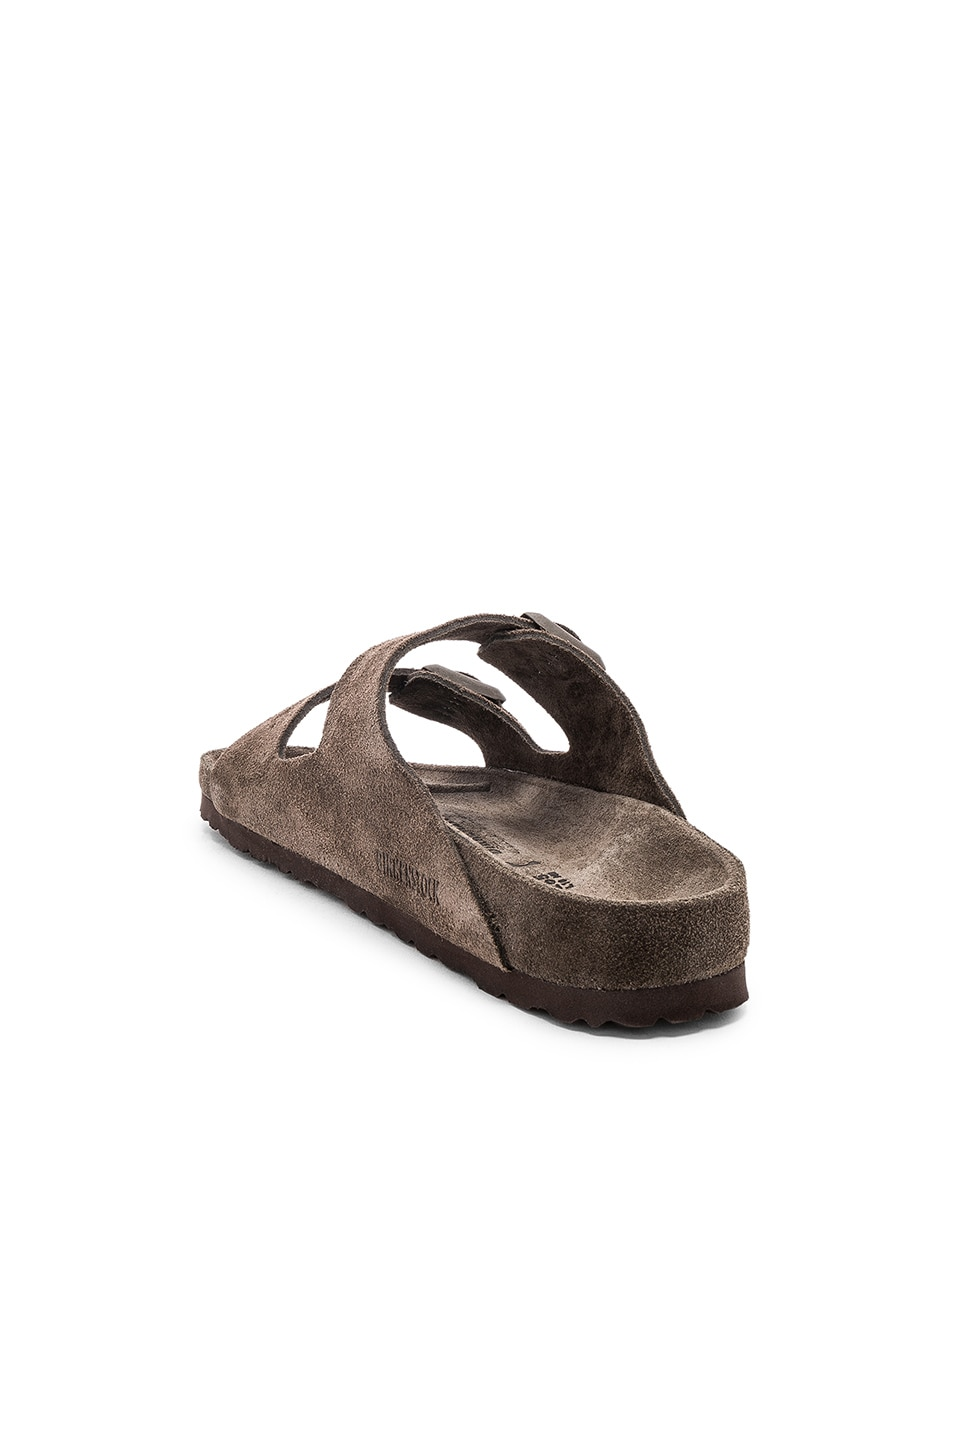 Image 3 of Rick Owens x Birkenstock Suede Arizona in Dust